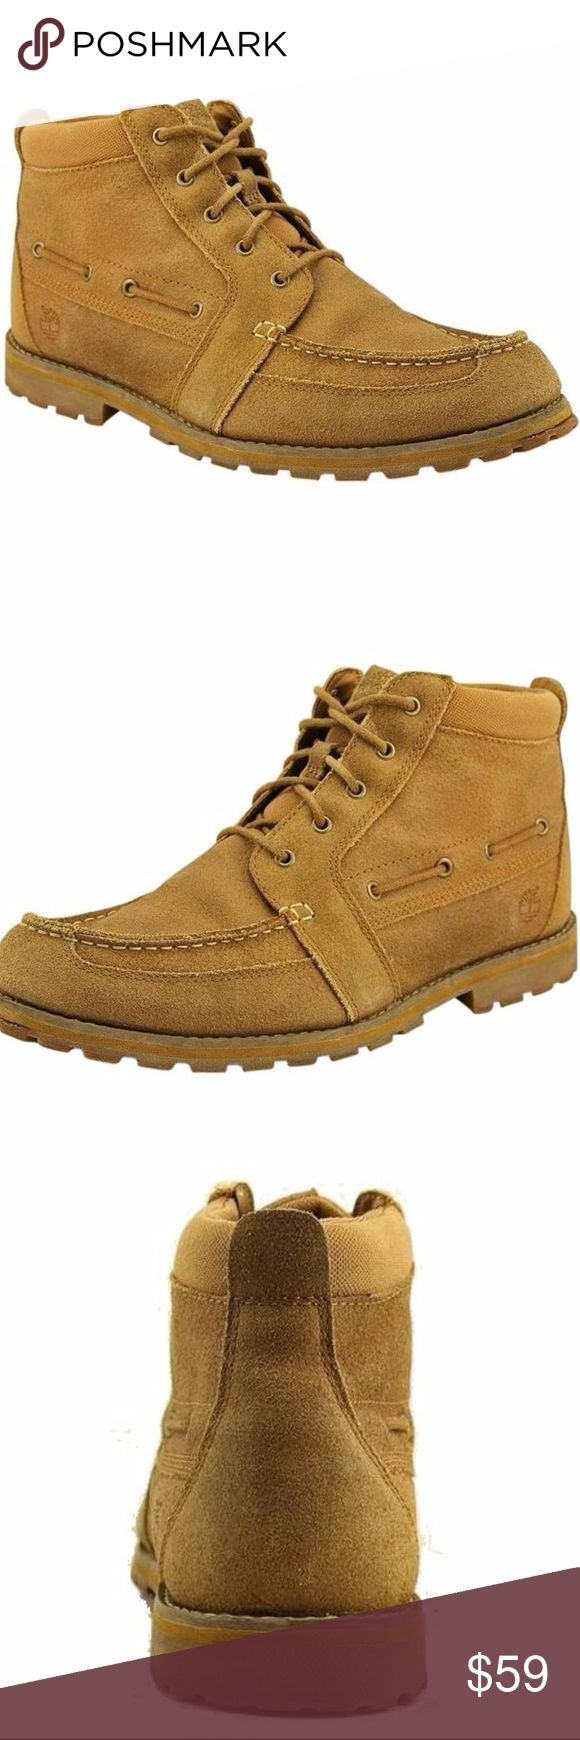 "Timberland Lace Up Tan Workboot 11.5 Timberland Chukka Boots / Earthkeepers Heritage Mt Chk Womens Size 11.5 Brown / Tan Work Boots Style - Leather upper with a rounded toe.   Compare at $160. 00  Size: 11.5 medium  Color: light brown / tan Material: Leather Measurements: Shaft measures 4.5"", circumference measures 9"" and 1"" heel width: medium (b, m).  Perfect choice for this time of year Treat yourself today! Timberland Shoes Ankle Boots & Booties"